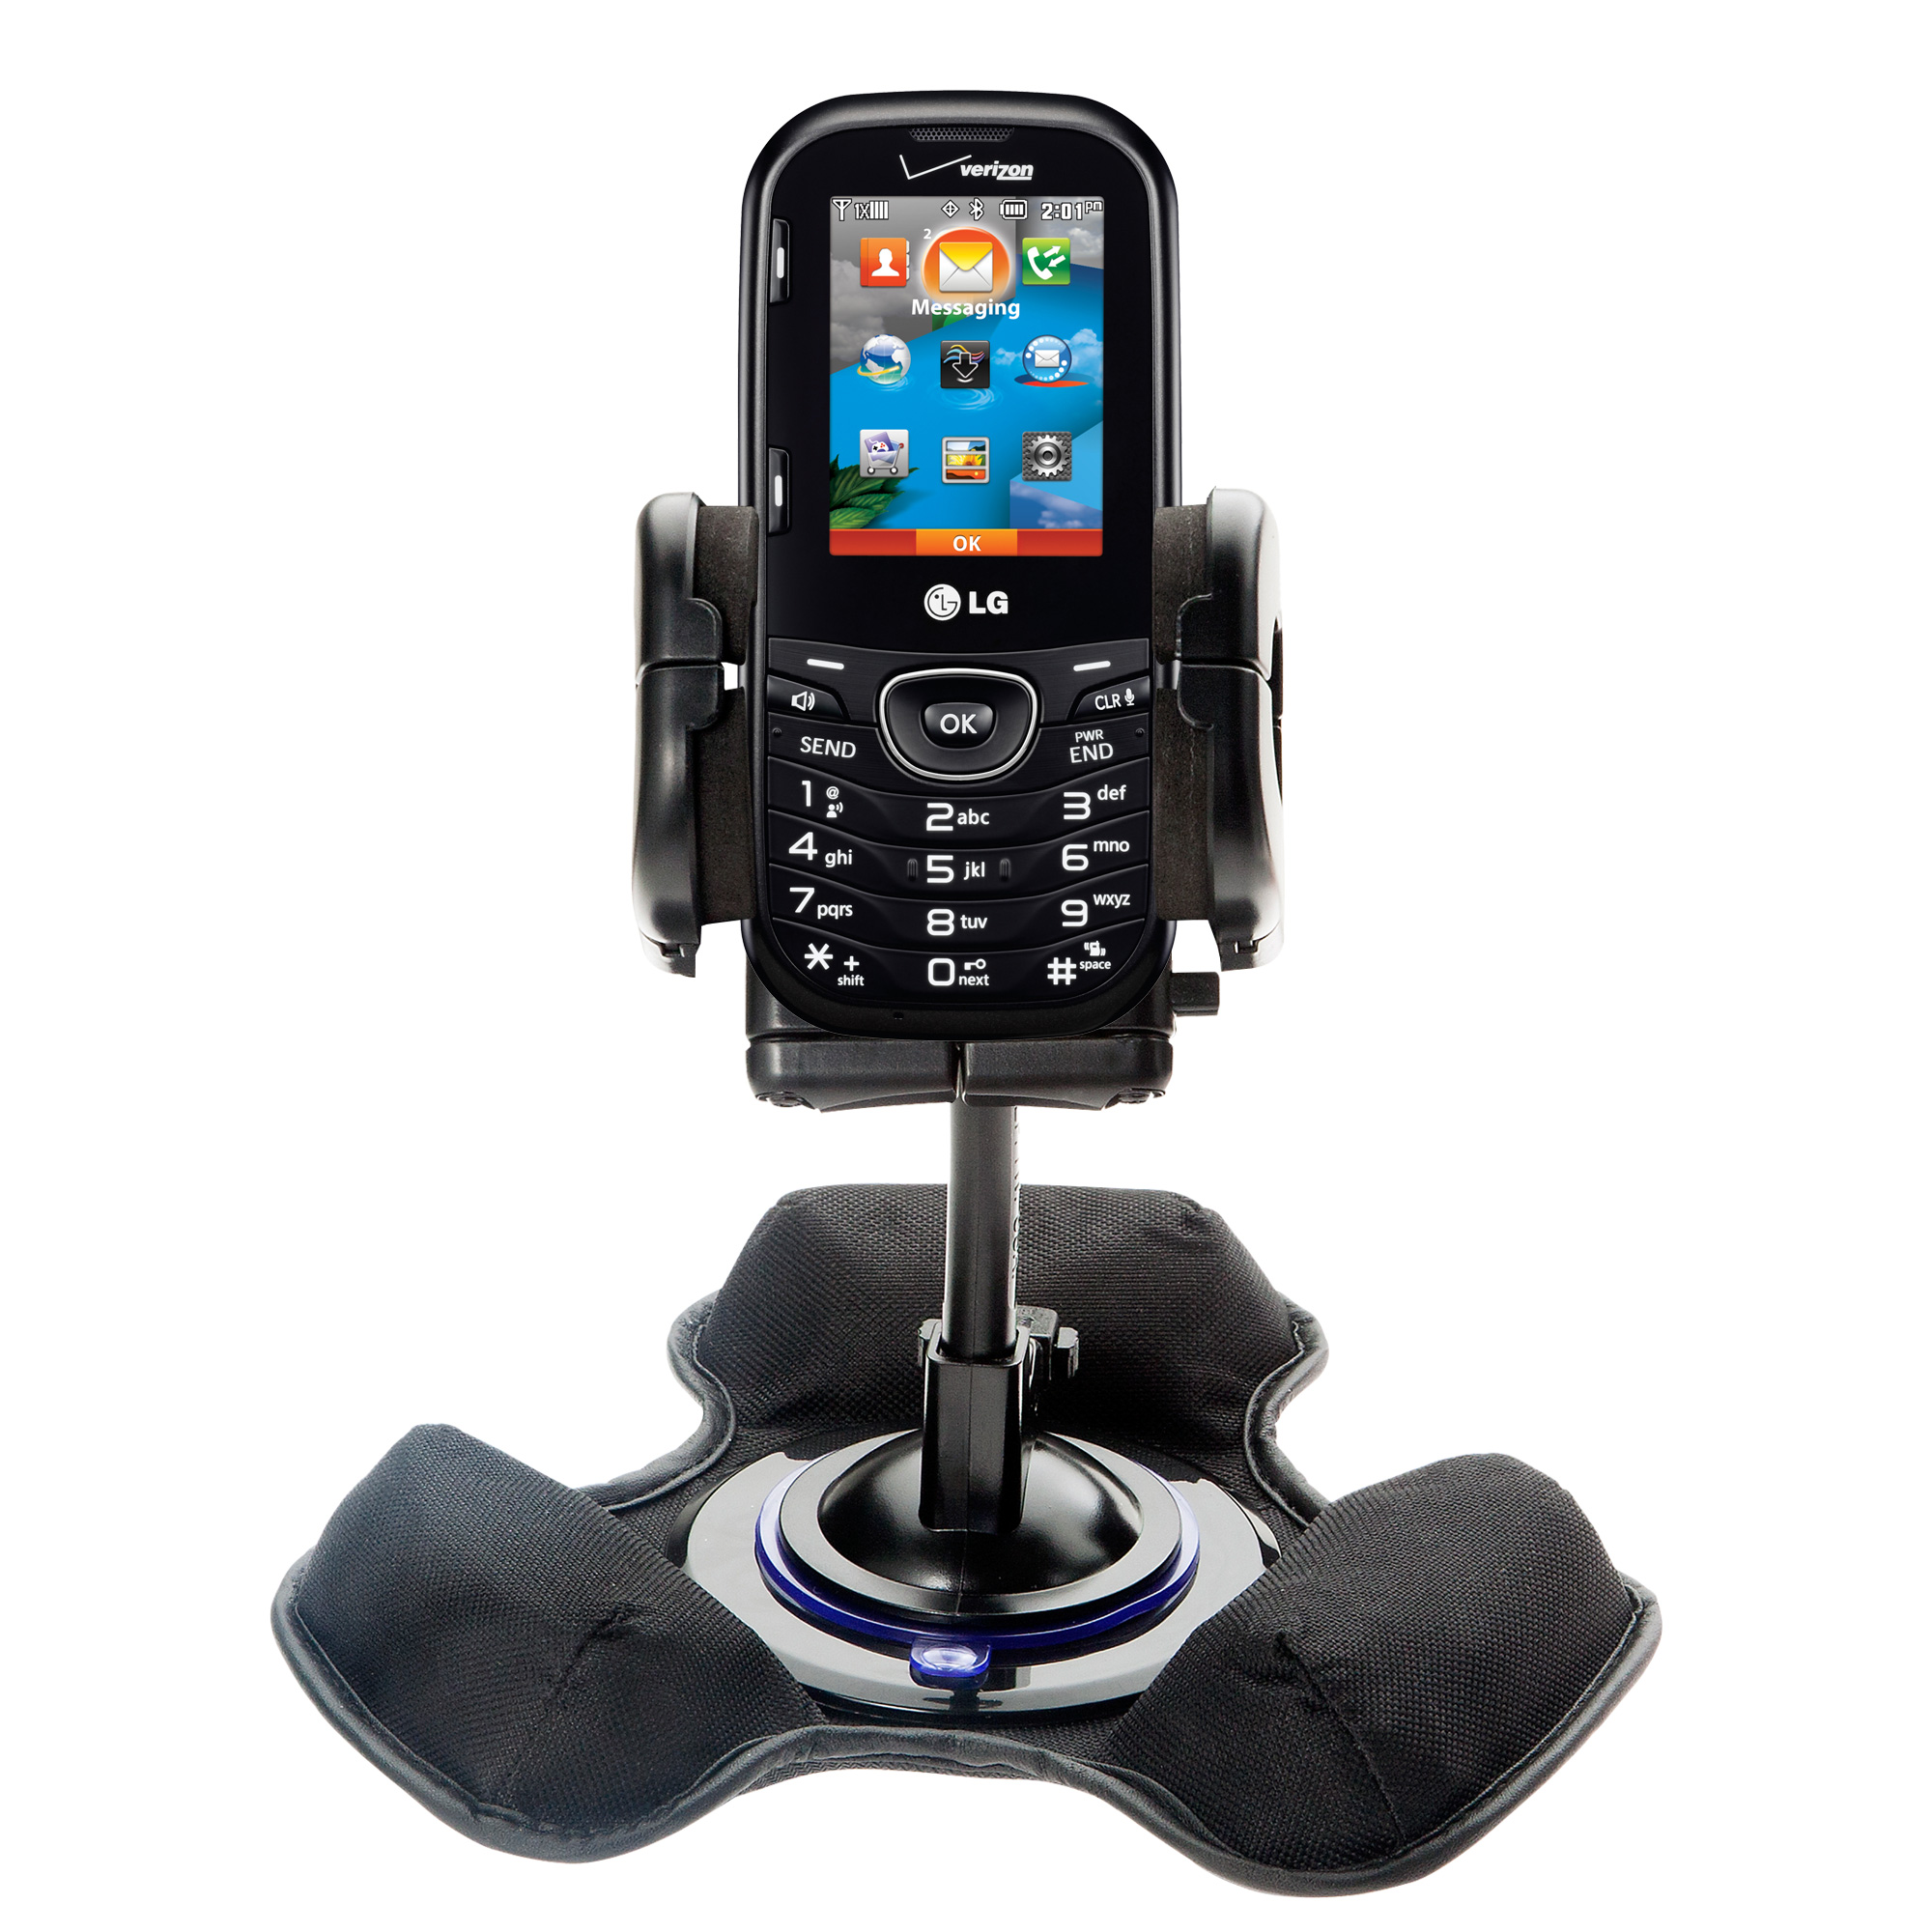 Dash and Windshield Holder compatible with the LG Cosmos 2